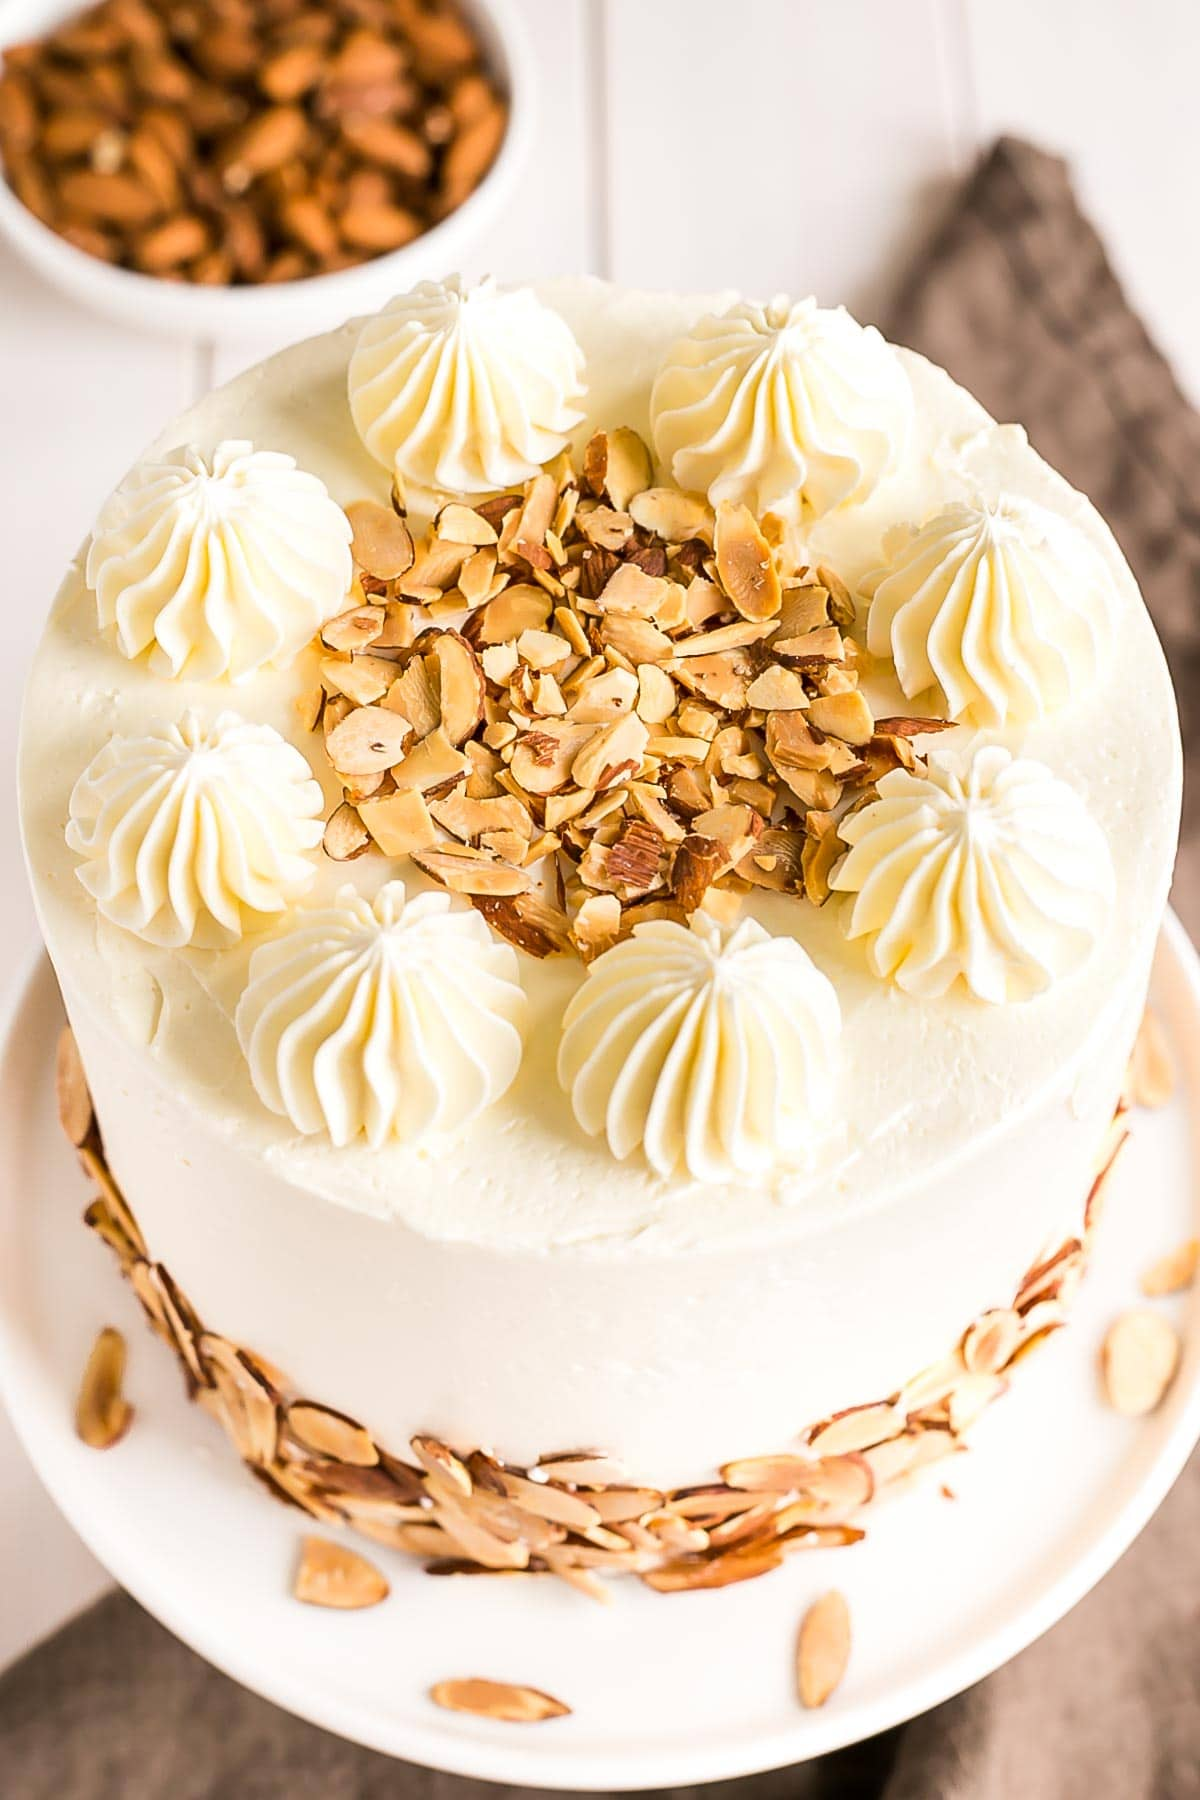 Almond cake with toasted almonds